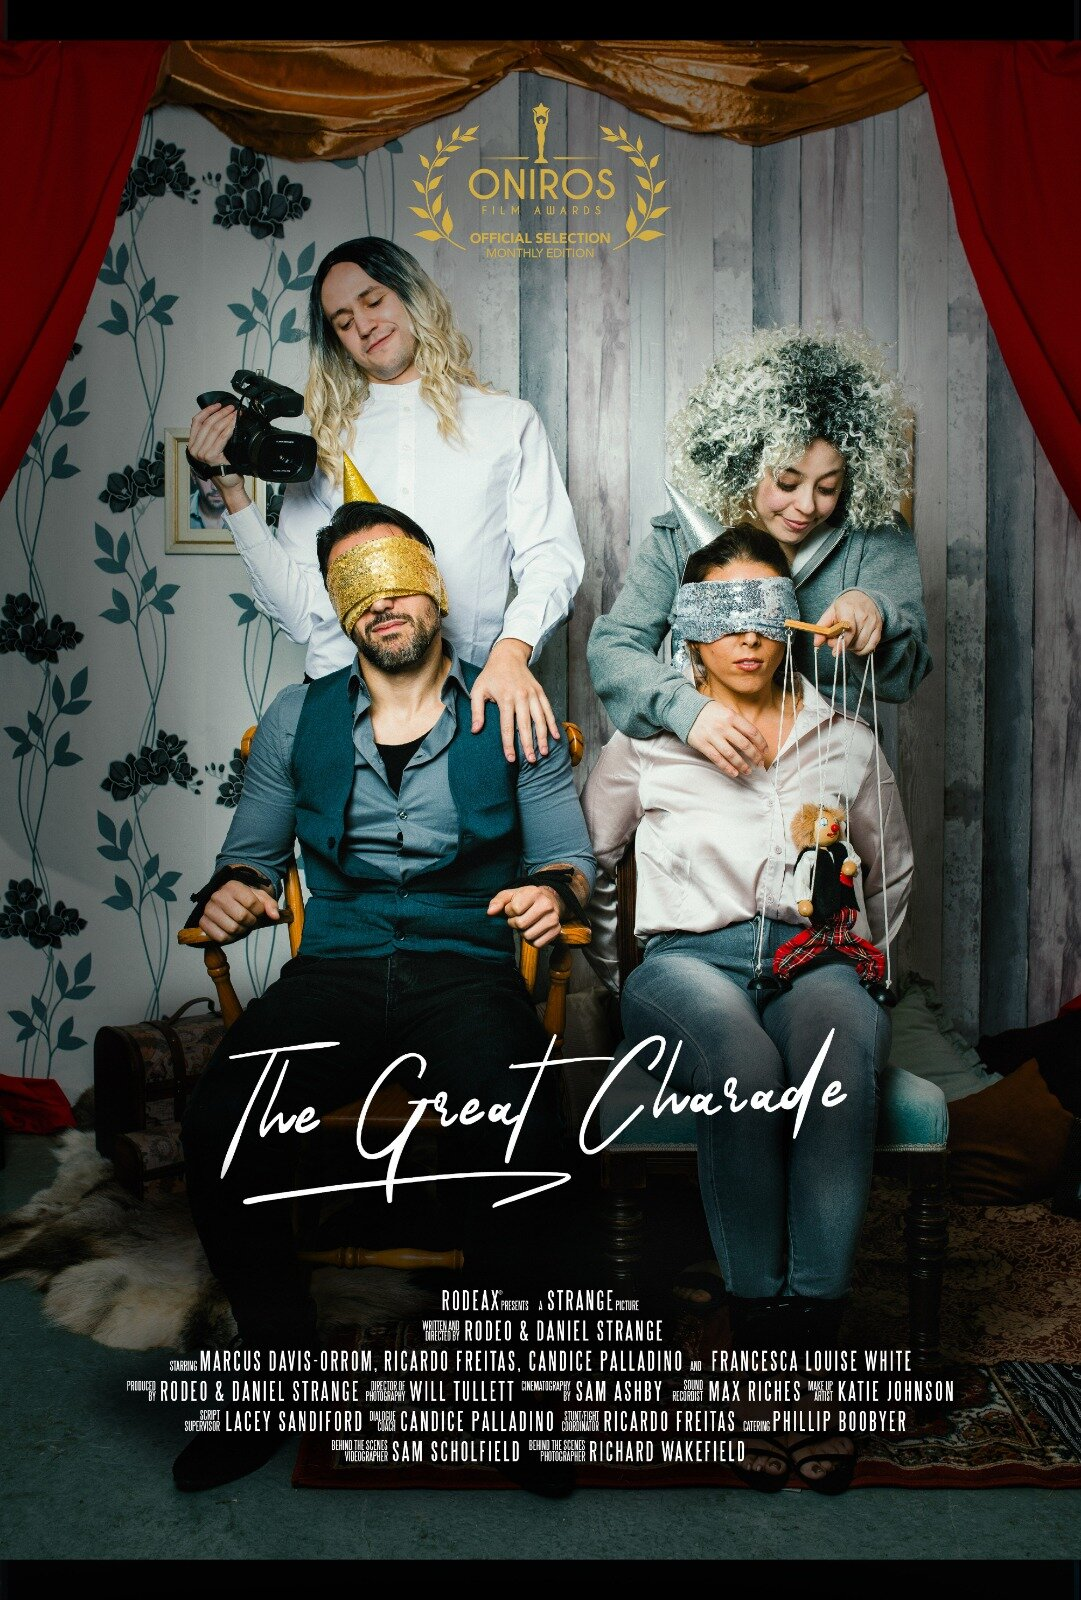 THE GREAT CHARADE - ASSOCIATE PRODUCER